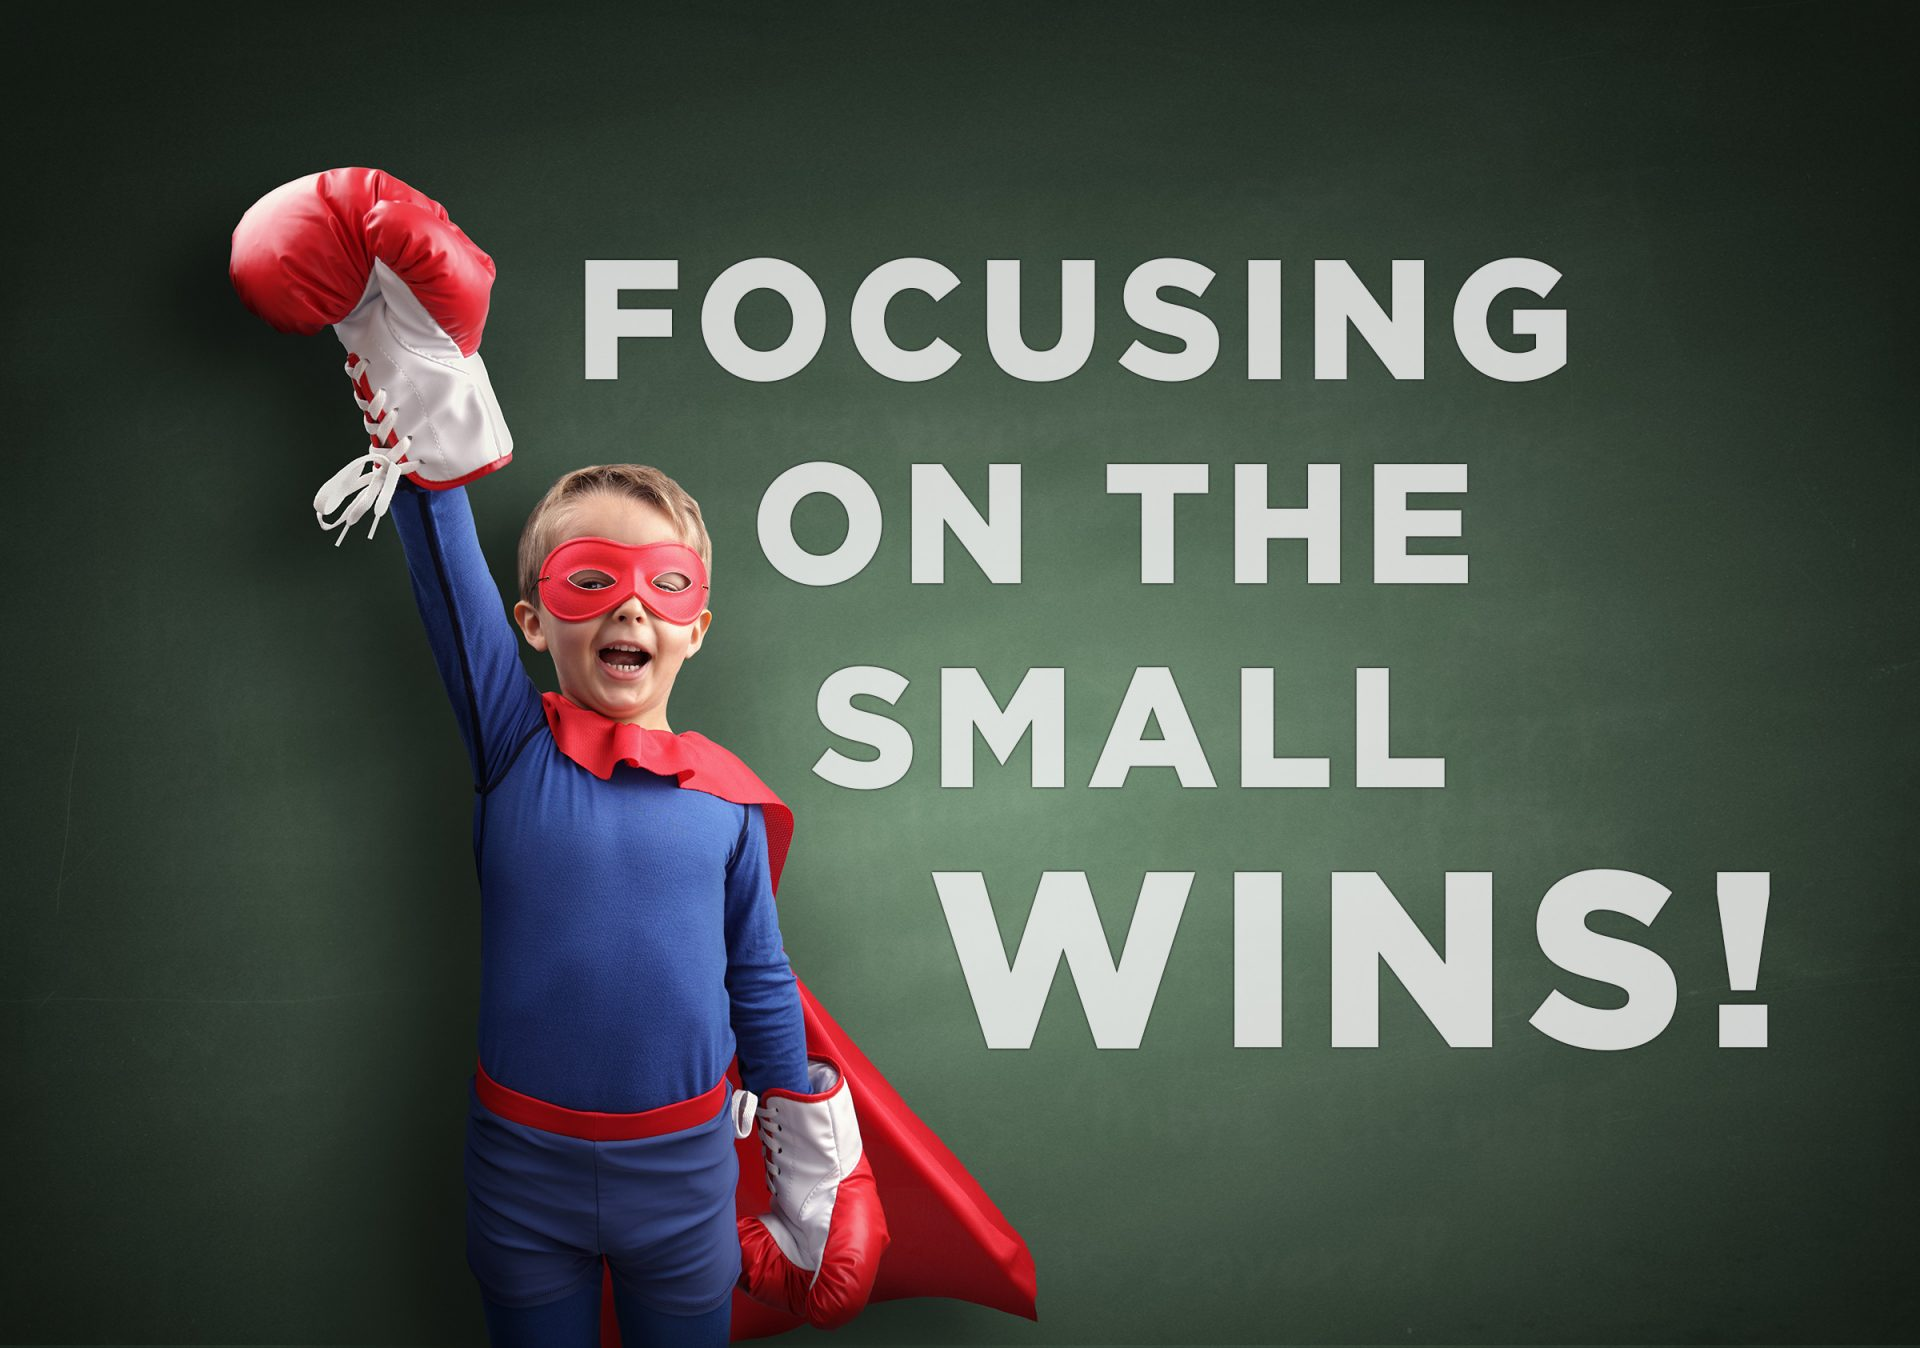 Focusing On The Small Wins